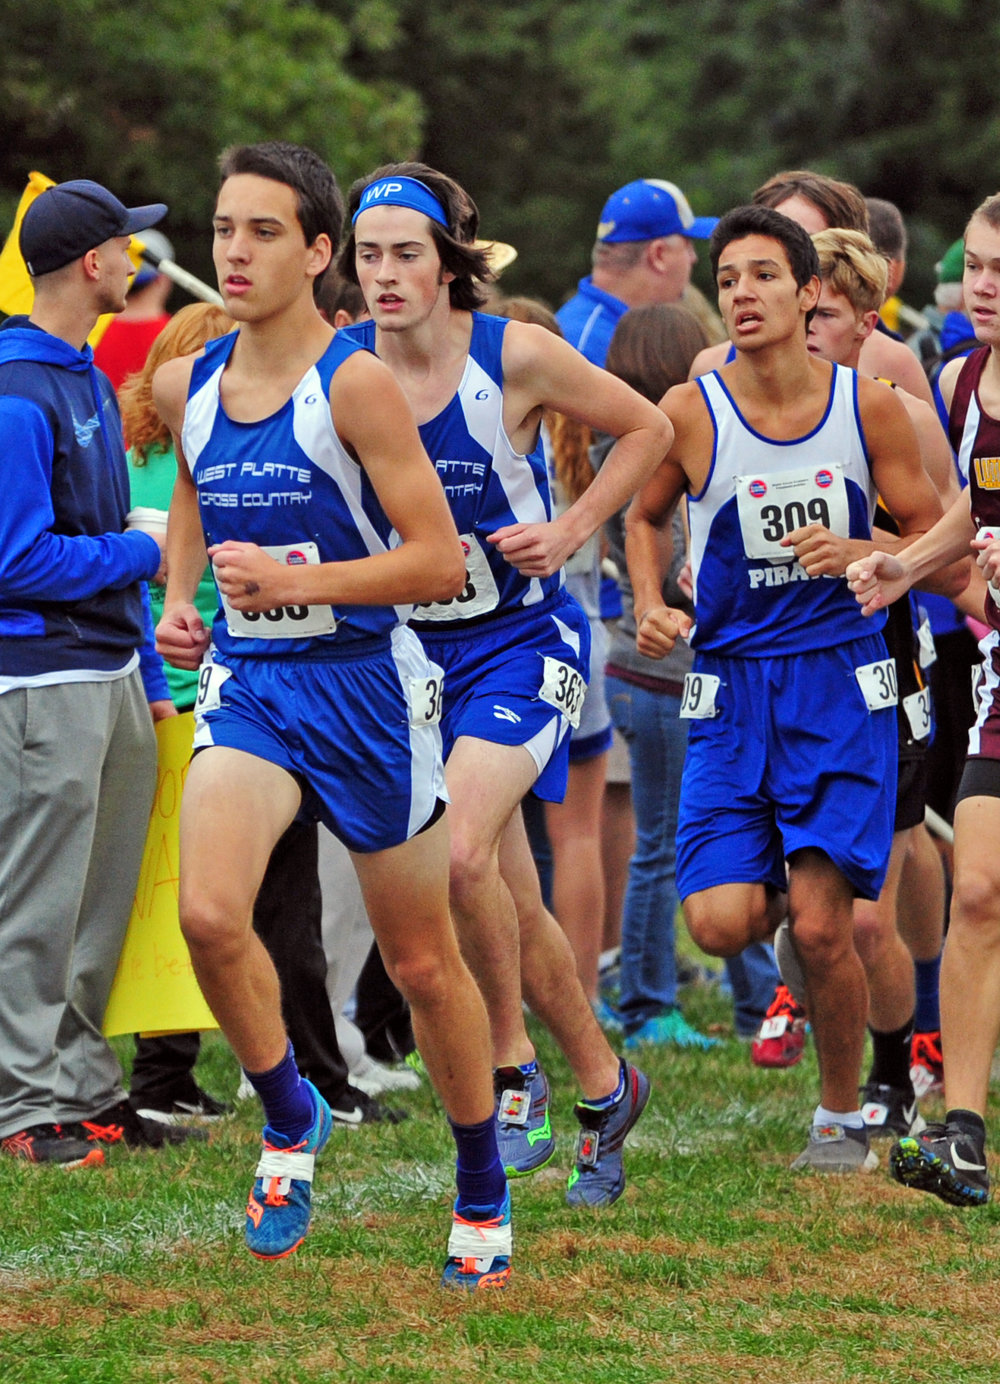 NICK INGRAM/Citizen photo West Platte sophomore Phillip Pattison, left, and senior Andrew Cicha, center, run in a pack during the race.